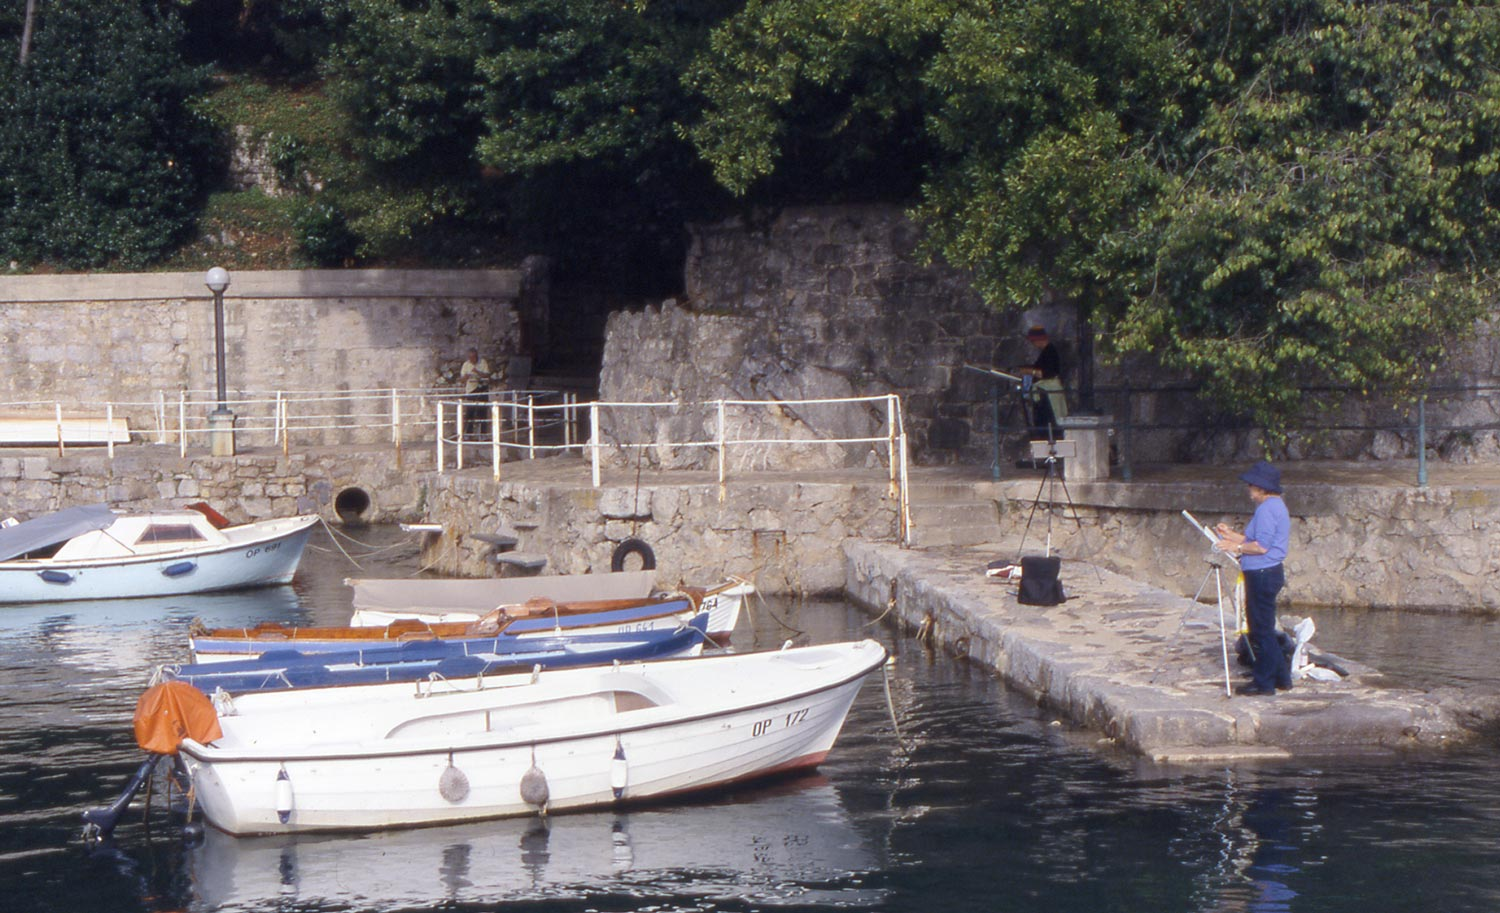 D. Painting, Opatija  In this case, reflection of the white boat is a light tone surrounded by darker water. I hope my student in the photo captured it!